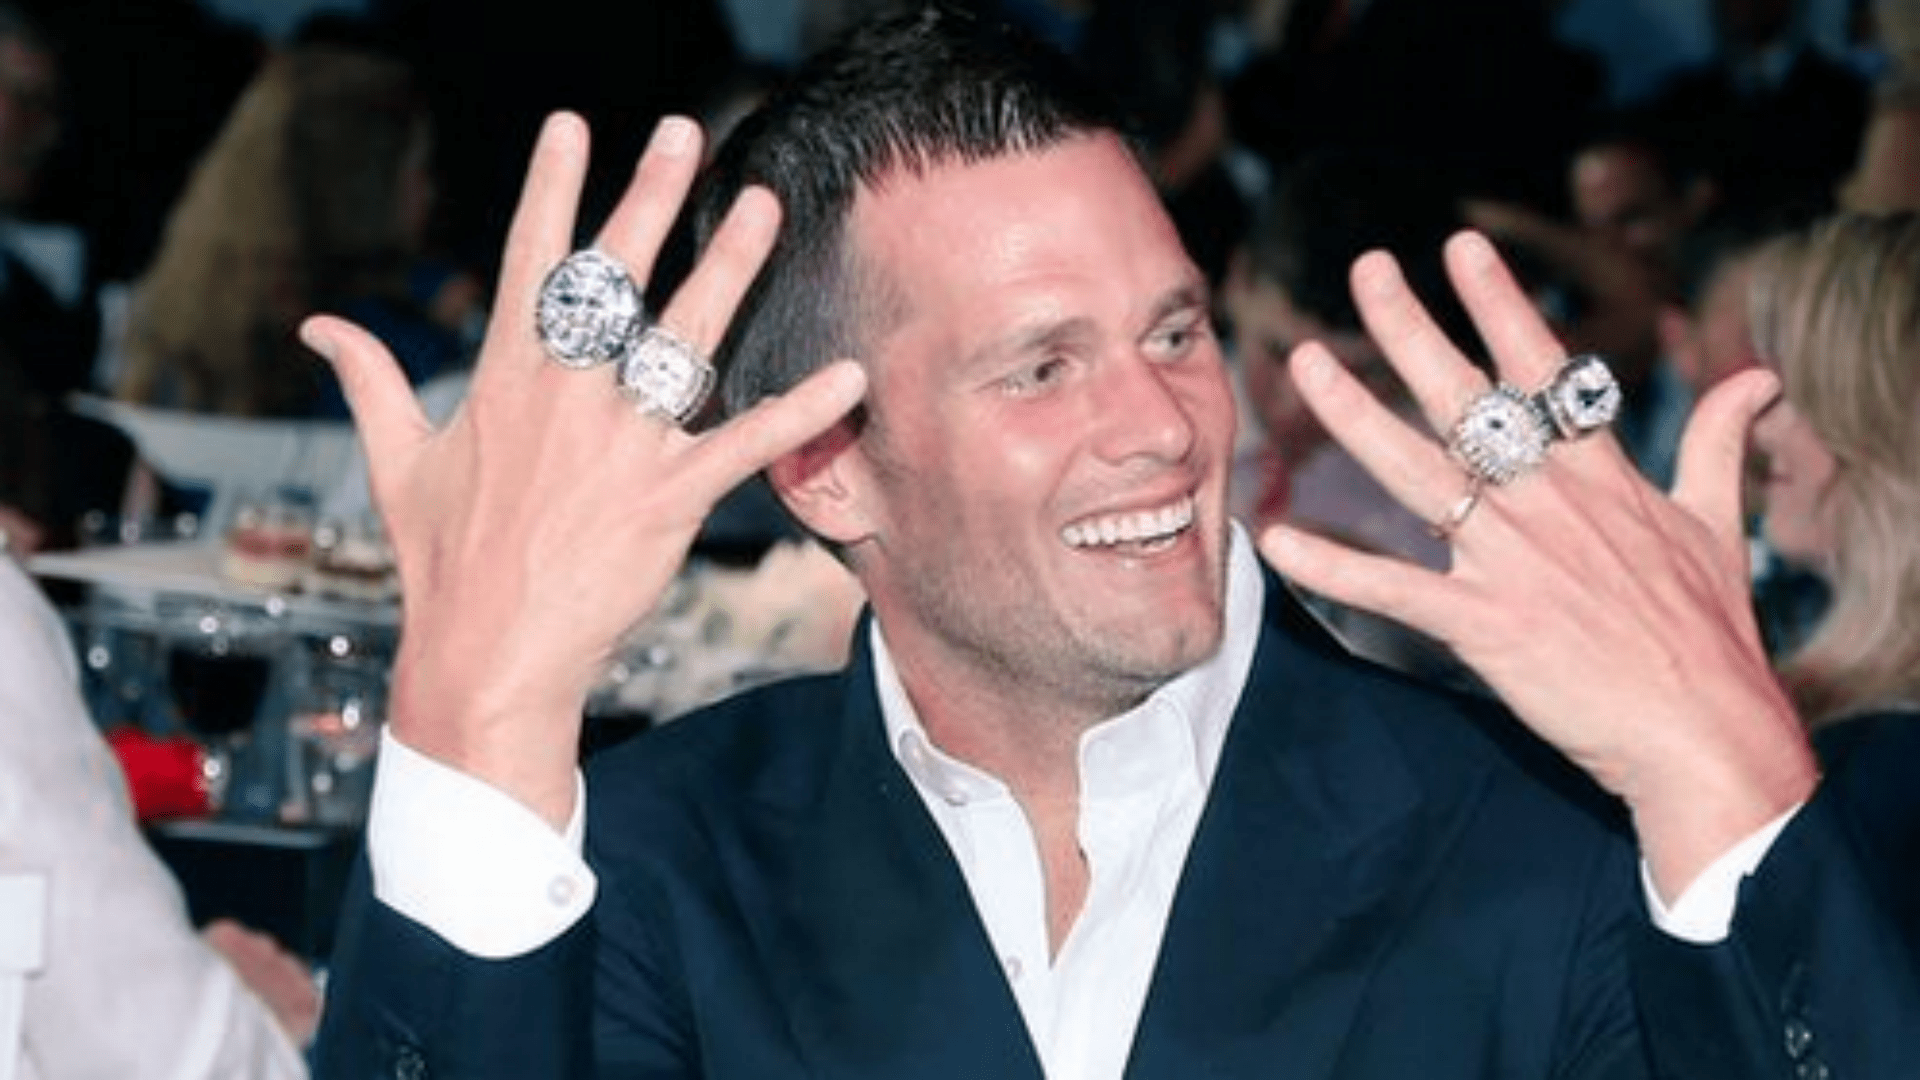 Tom Brady Lord Of The Rings With Images Tom Brady New England Patriots Tom Brady New England Patriots Football